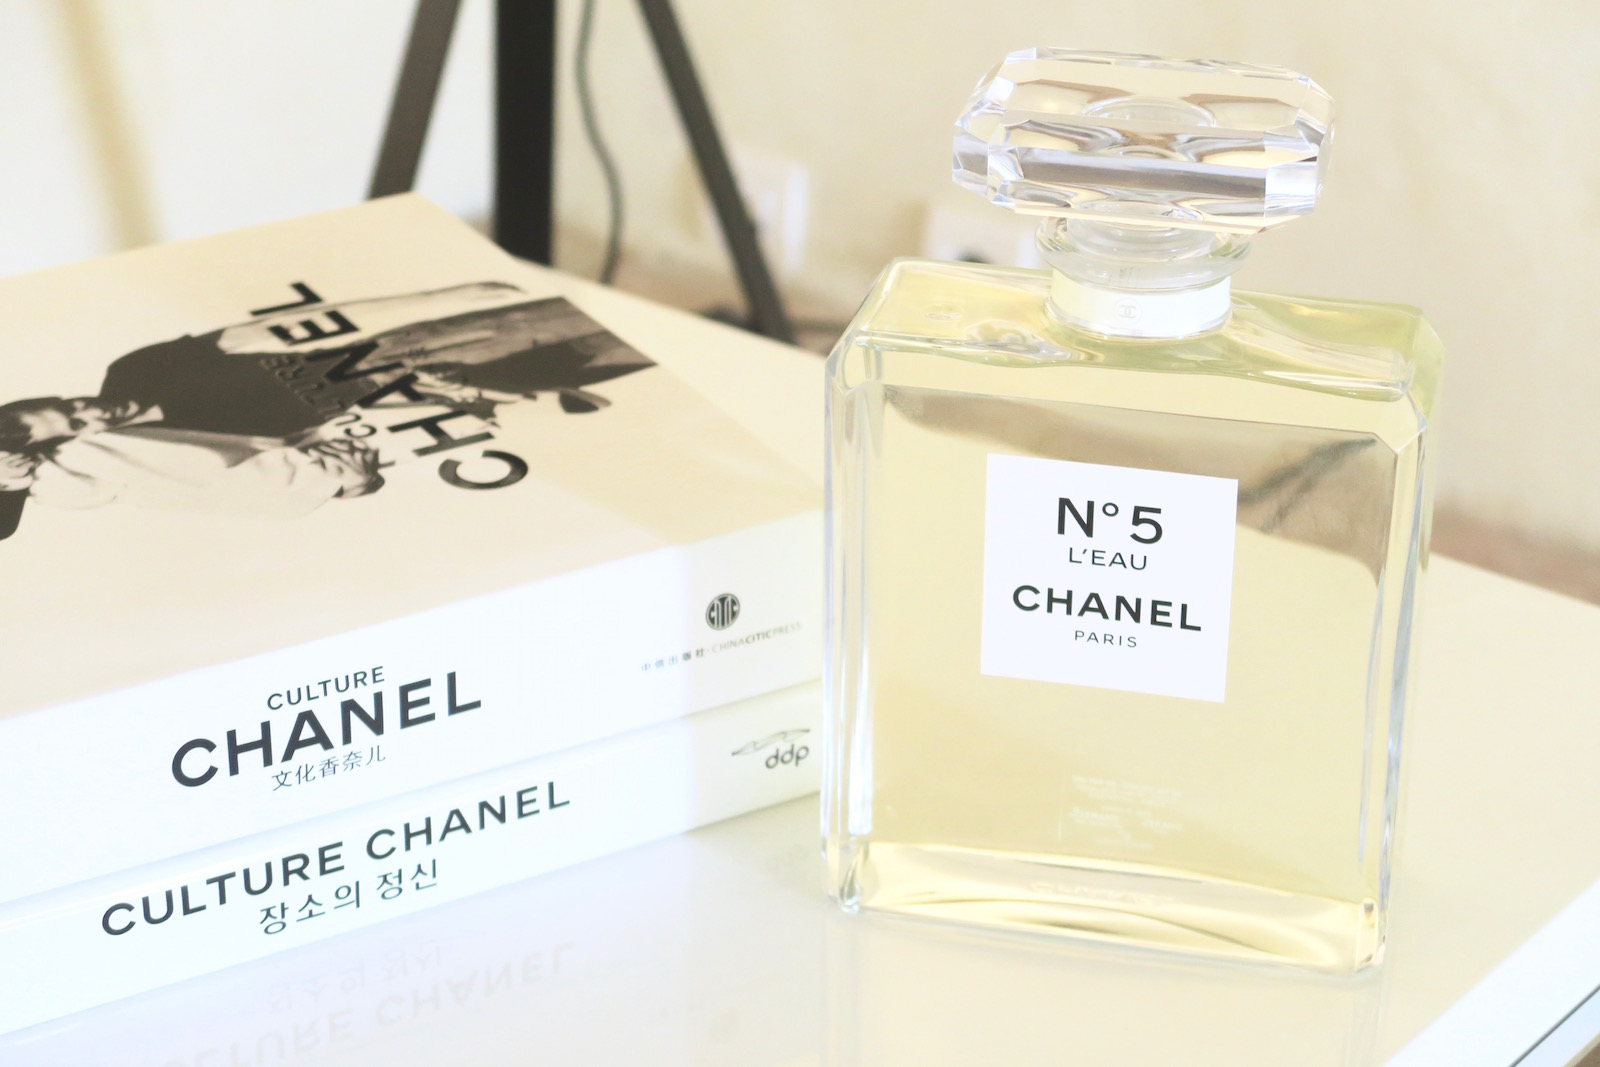 Chanel Leau The New No5 A Model Recommends